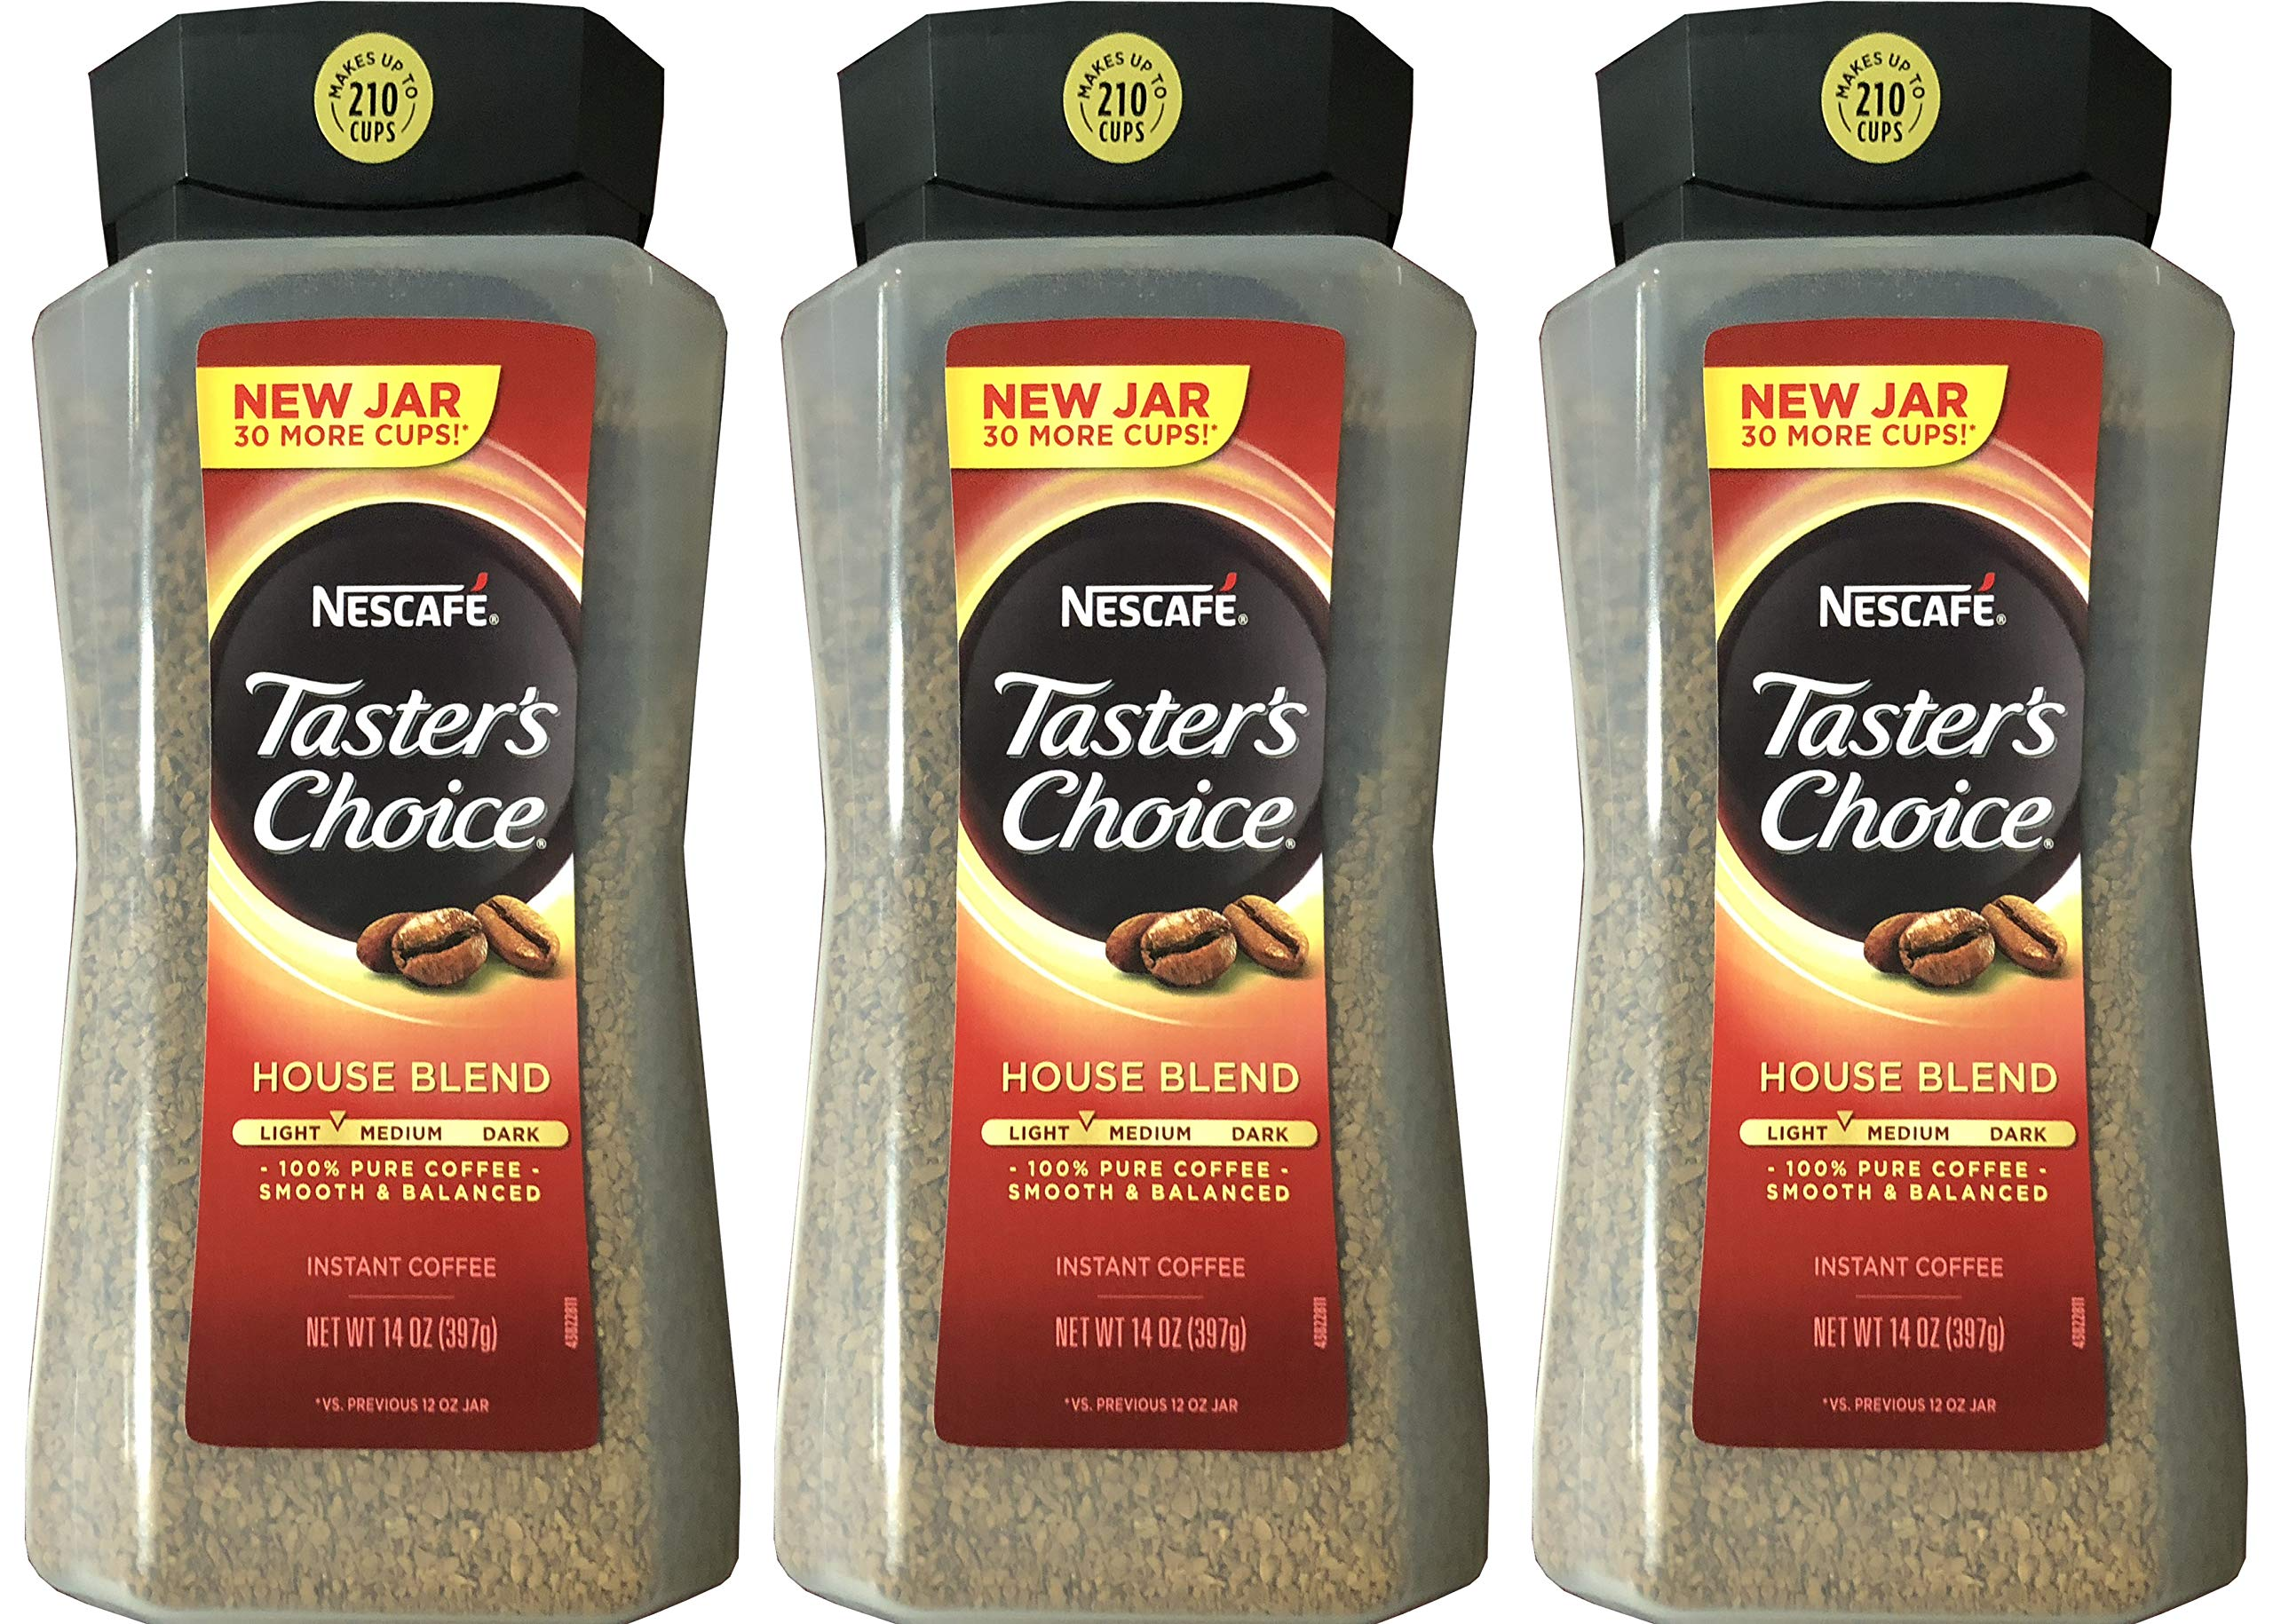 Taster's Choice Original Gourmet Instant Coffee 14 Oz, Pack of 3 by Taster's Choice